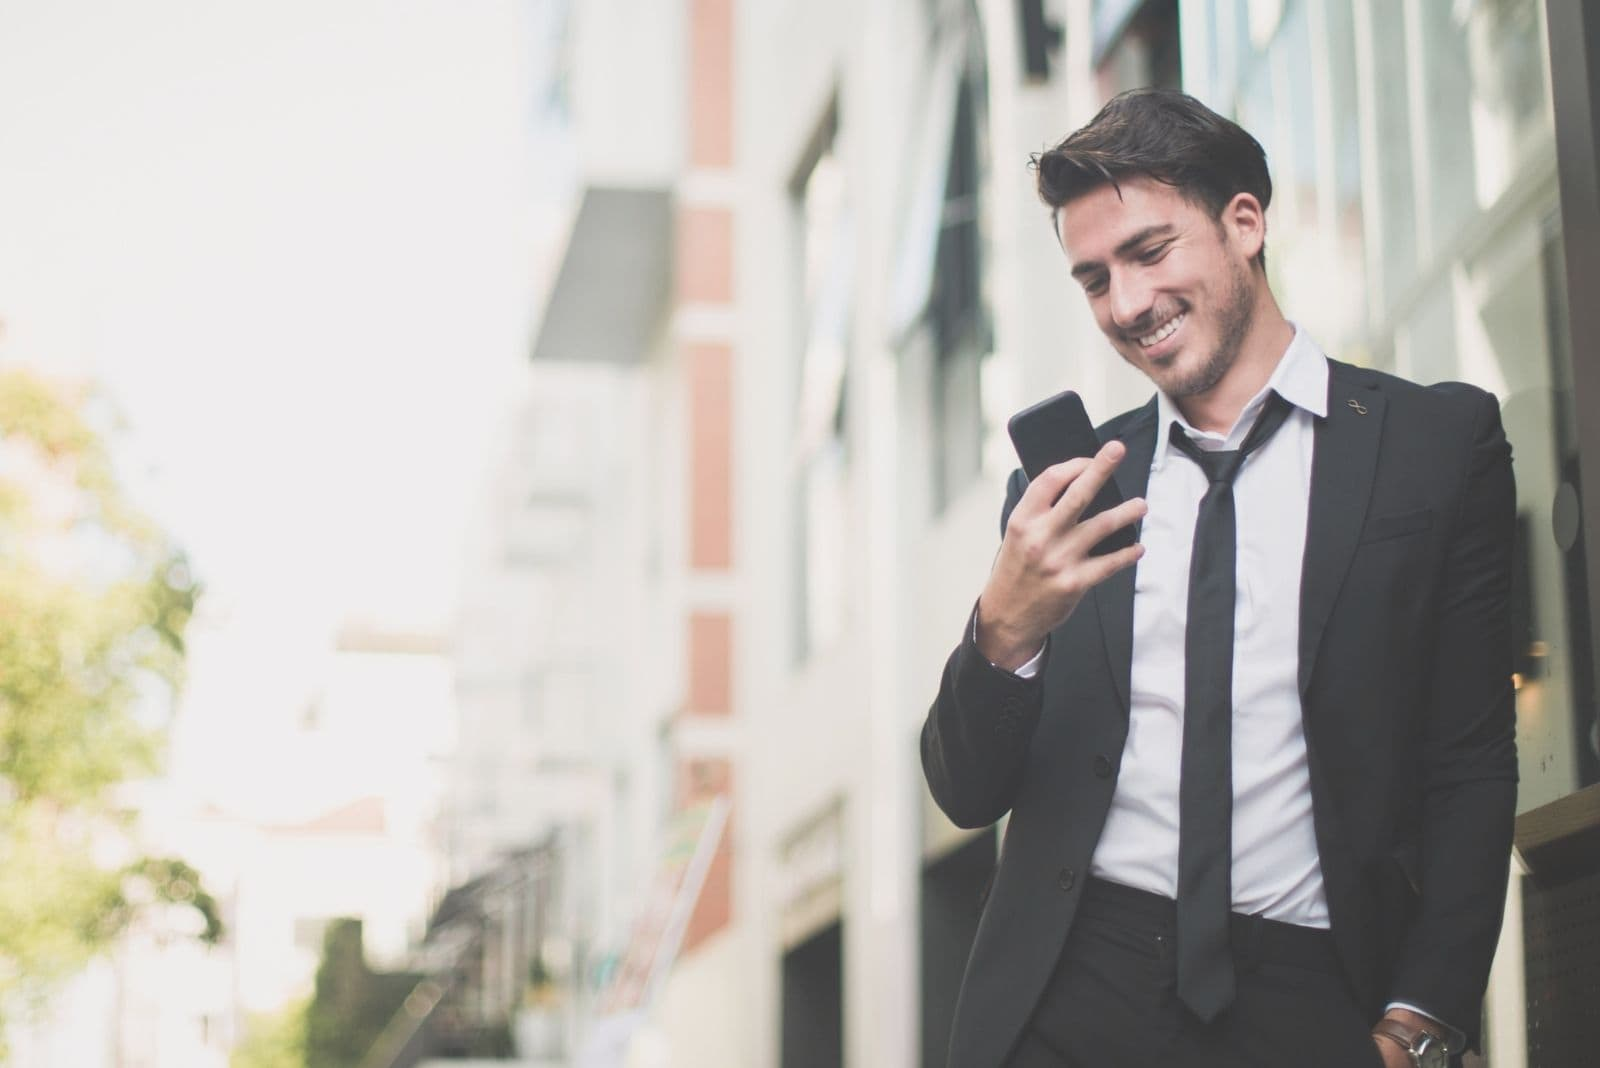 smiling business man texting with his phone leaning on the wall outdoors